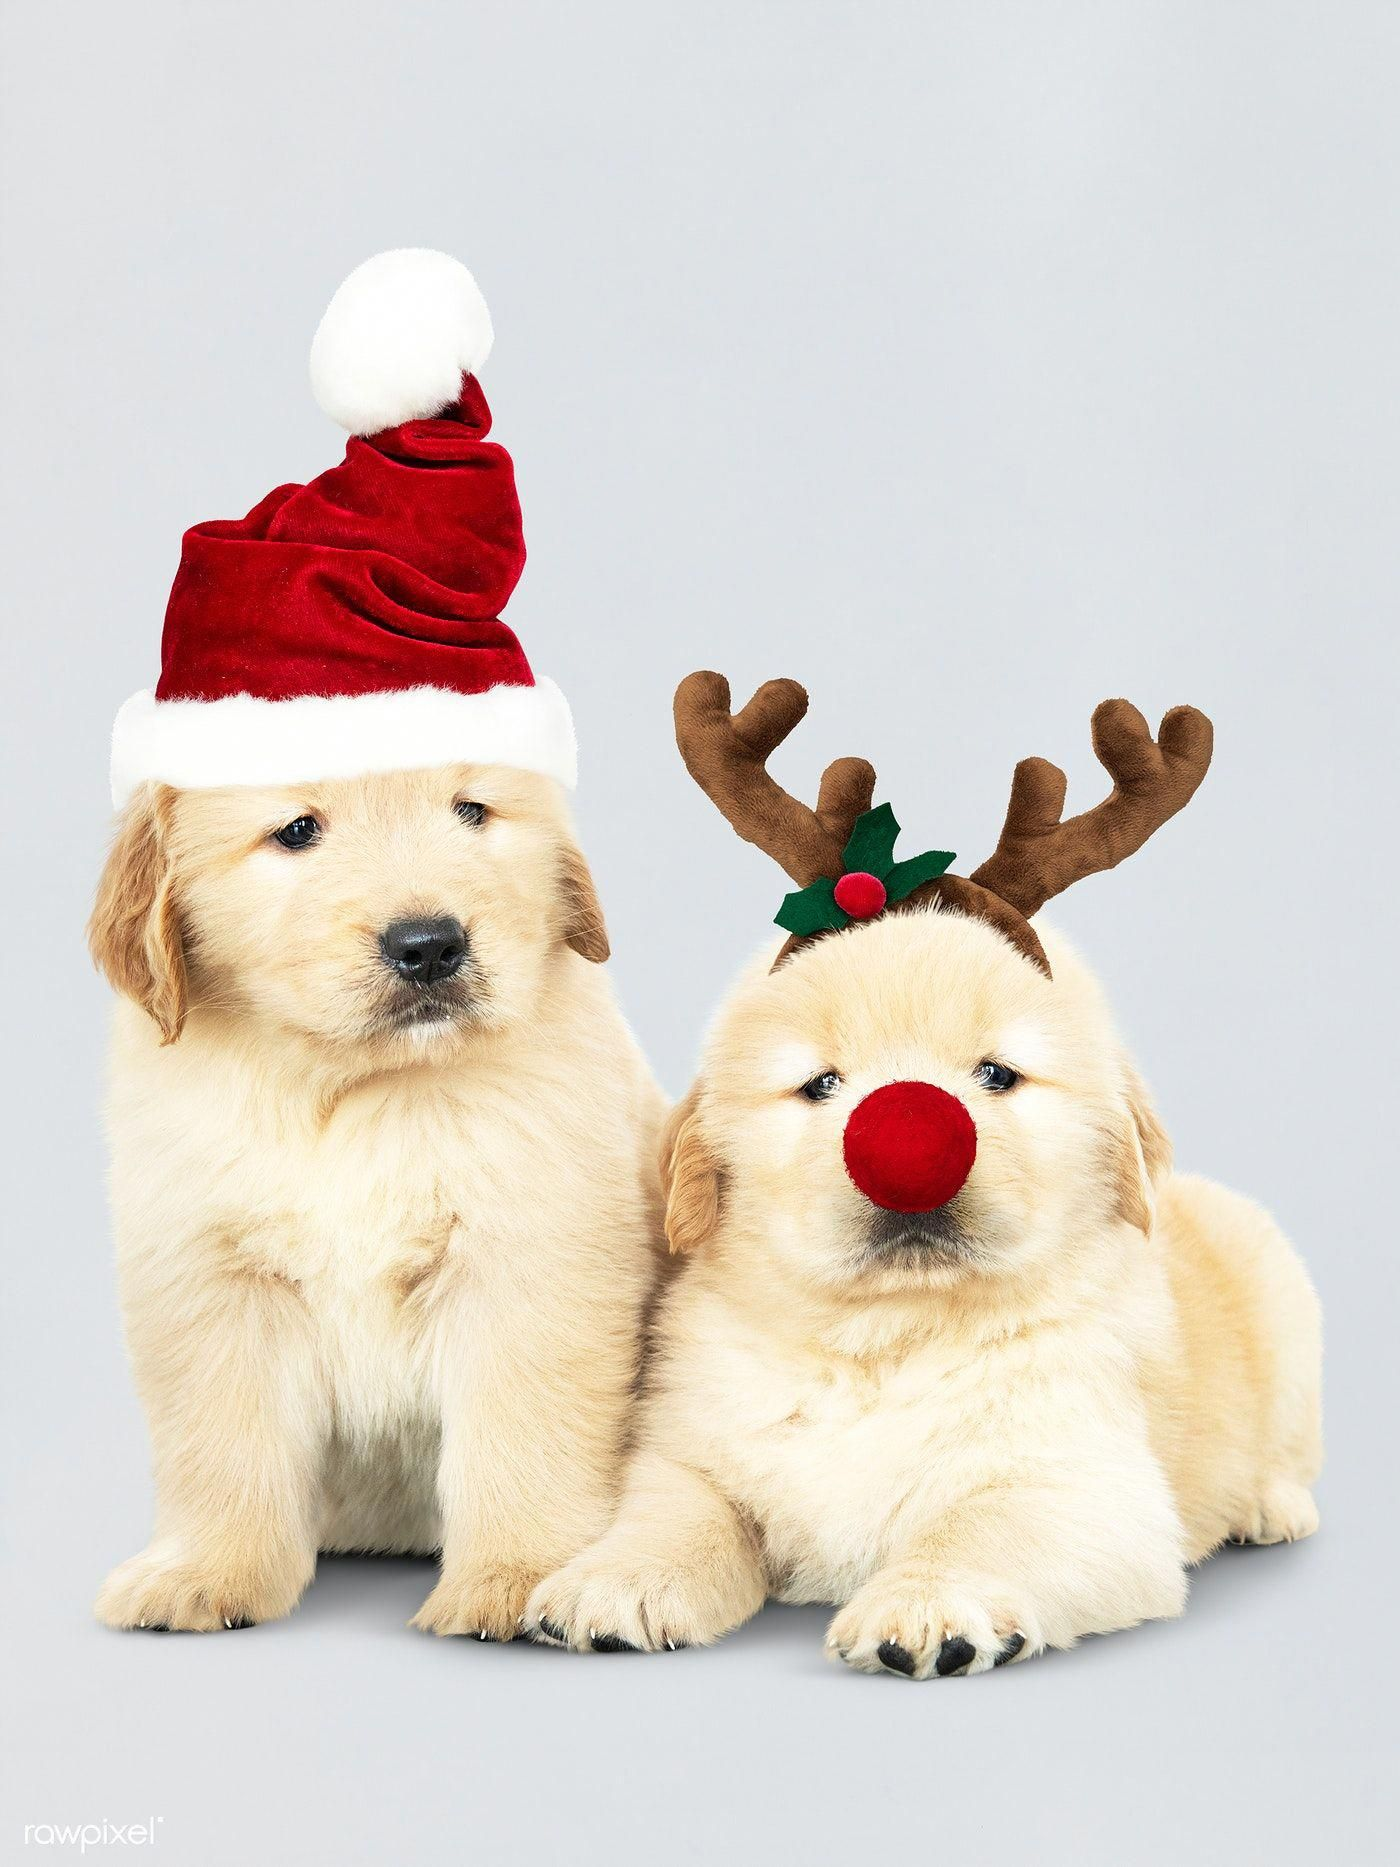 Magnificent Dog in 2020 Golden retriever puppy christmas